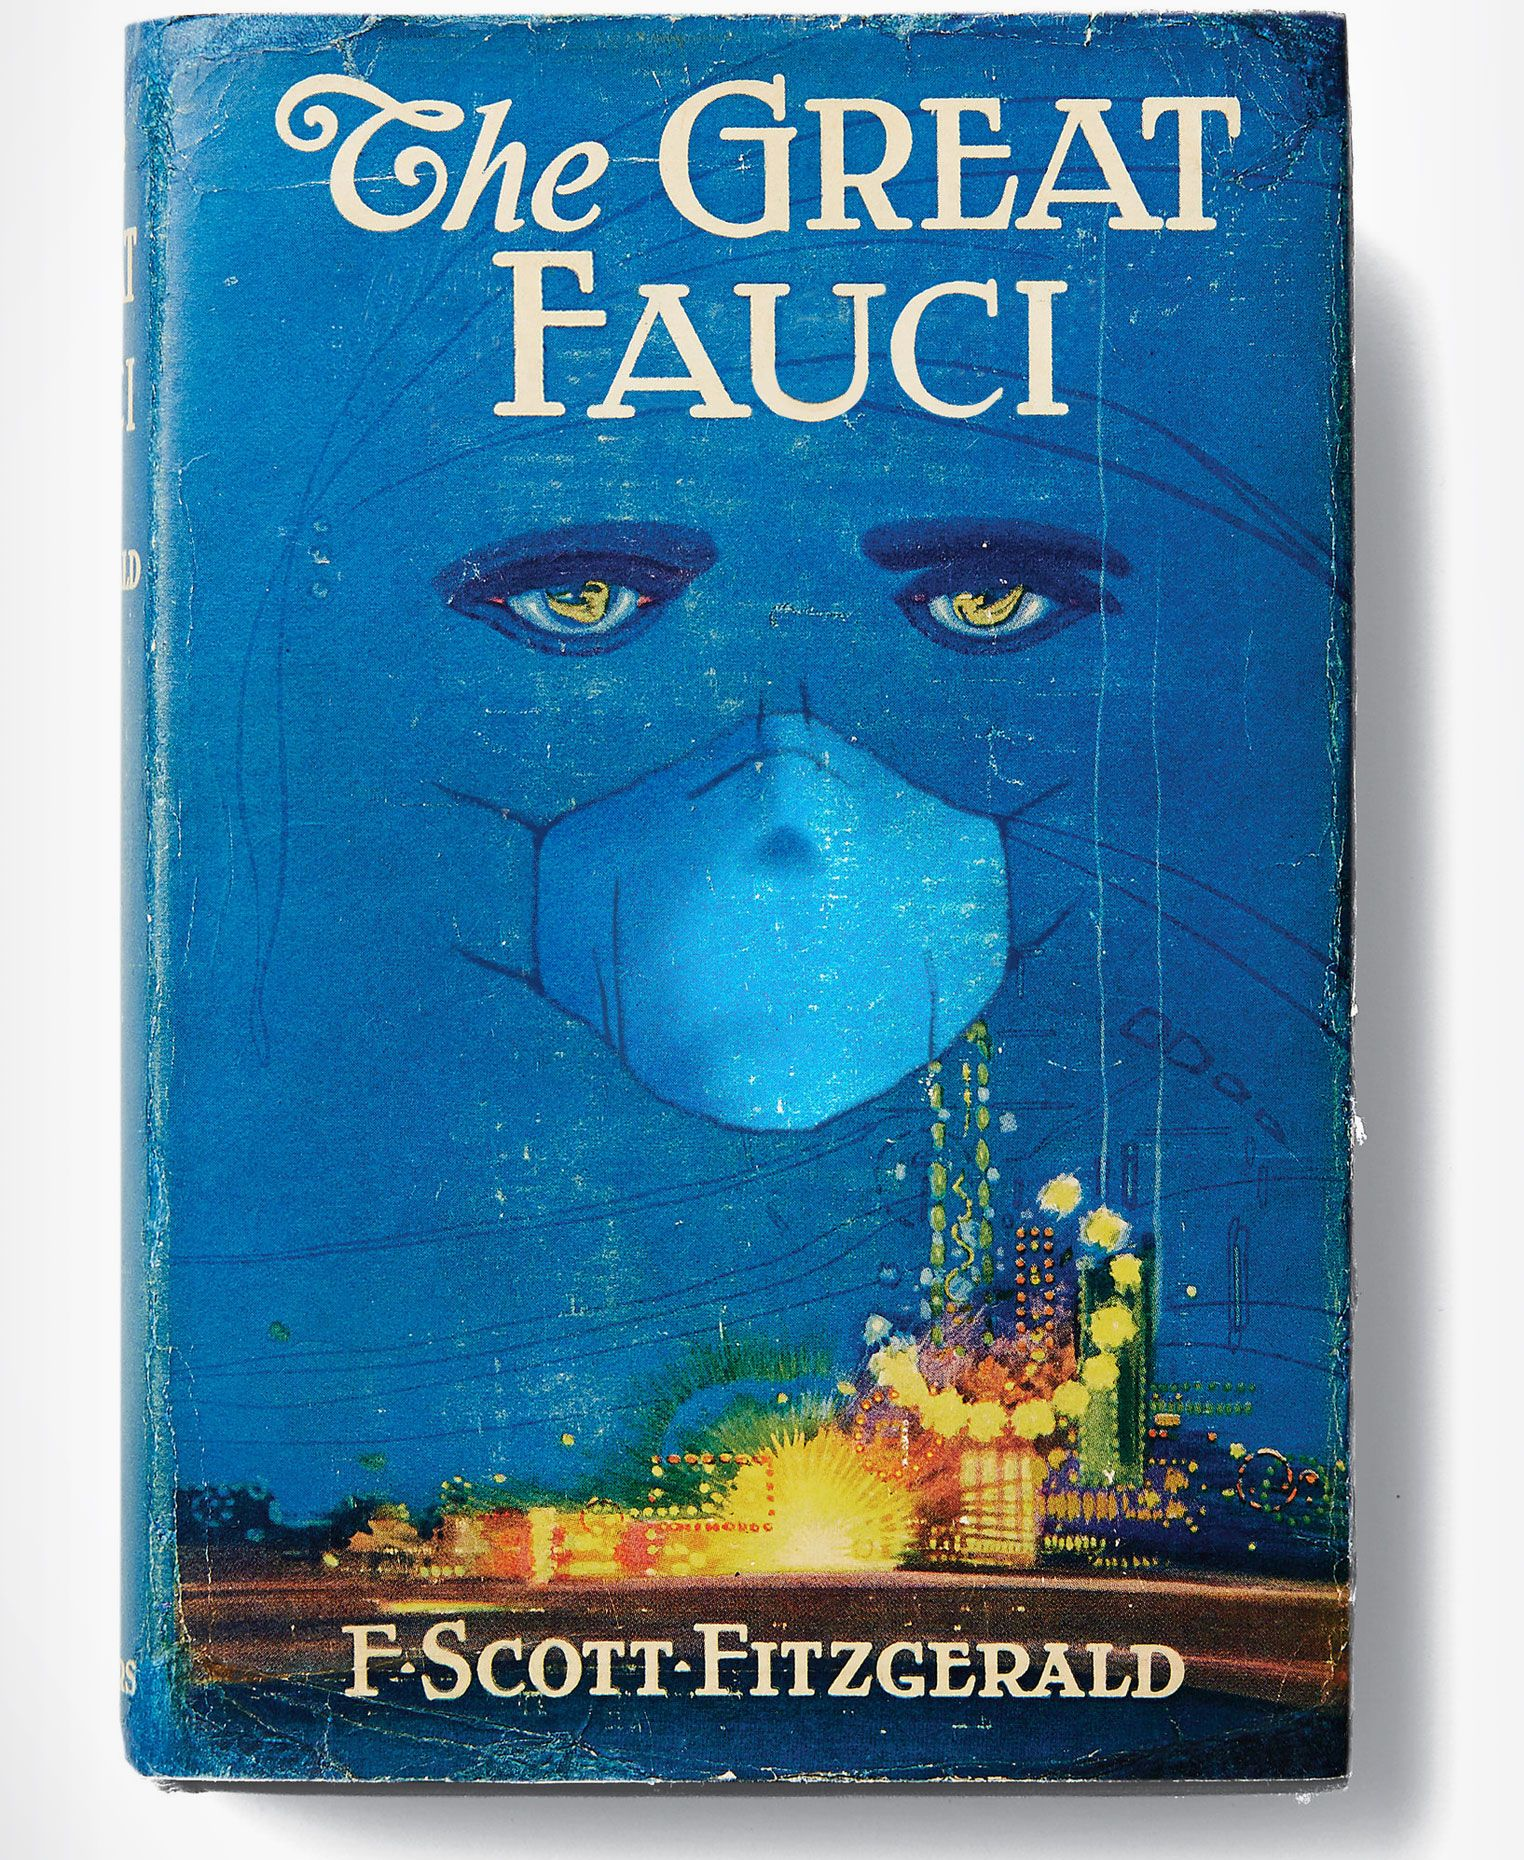 The Great Fauci (The Great Gatsby, by F. Scott Fitzgerald)